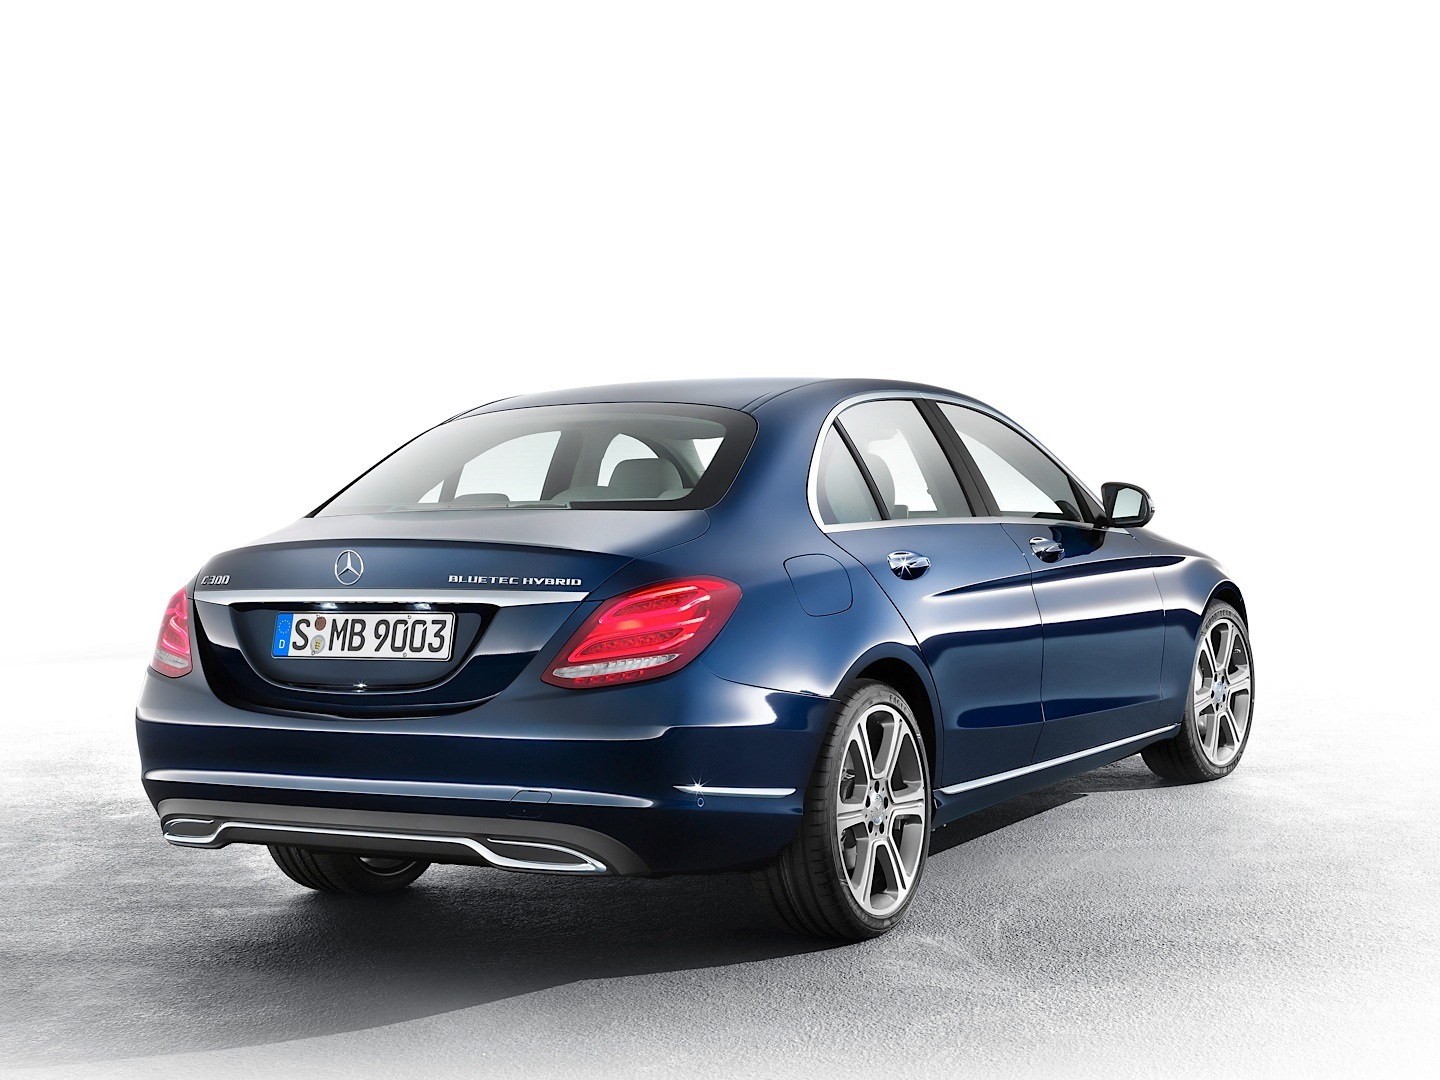 2015 mercedes benz c class w205 gets priced in the uk for Benz mercedes c class